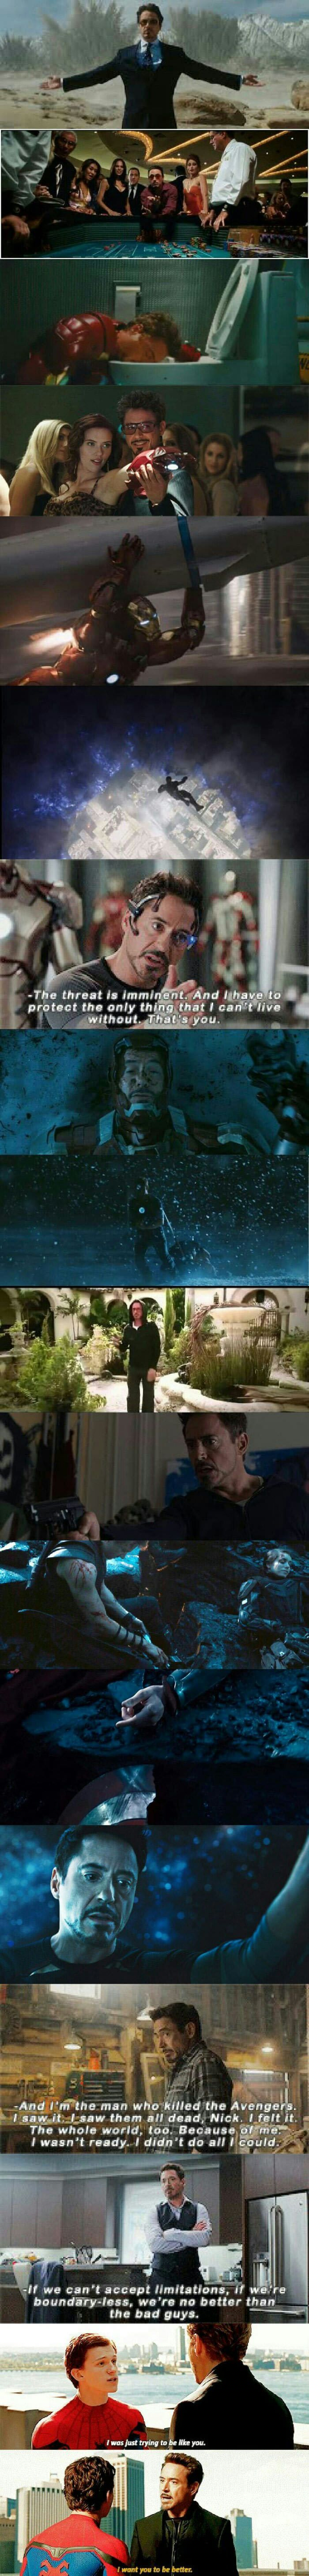 Tony Stark's character development